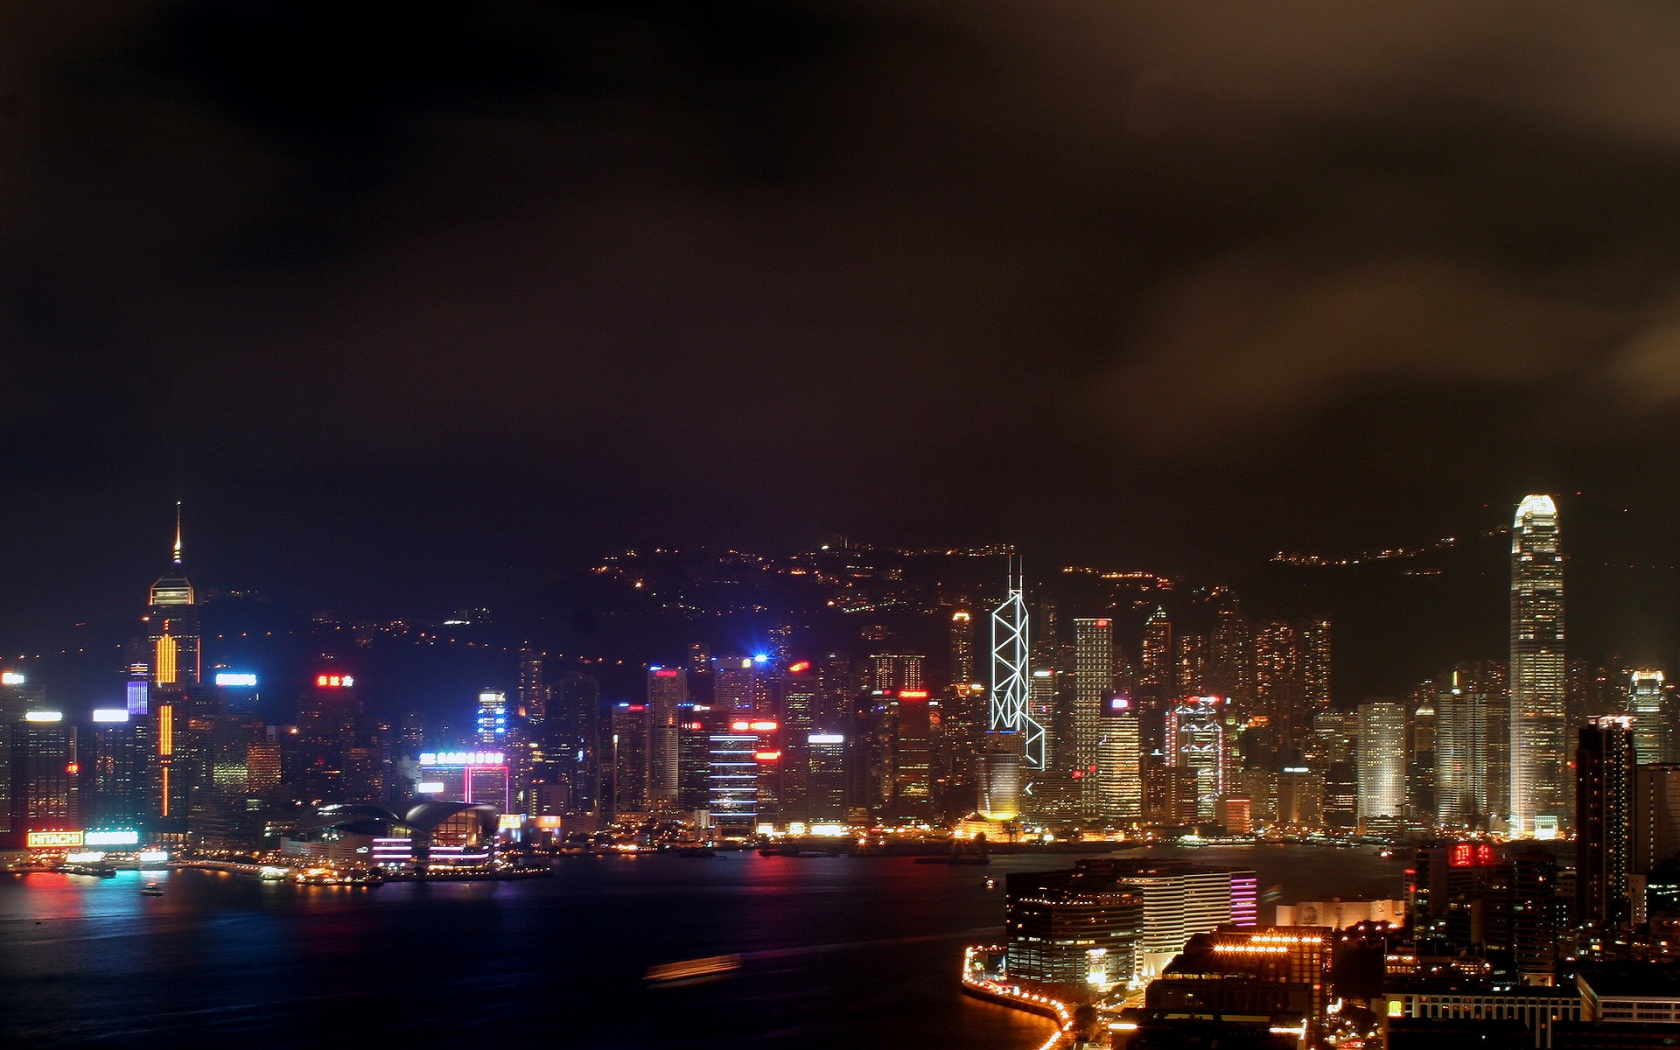 Hong Kong Night 470.06 Kb